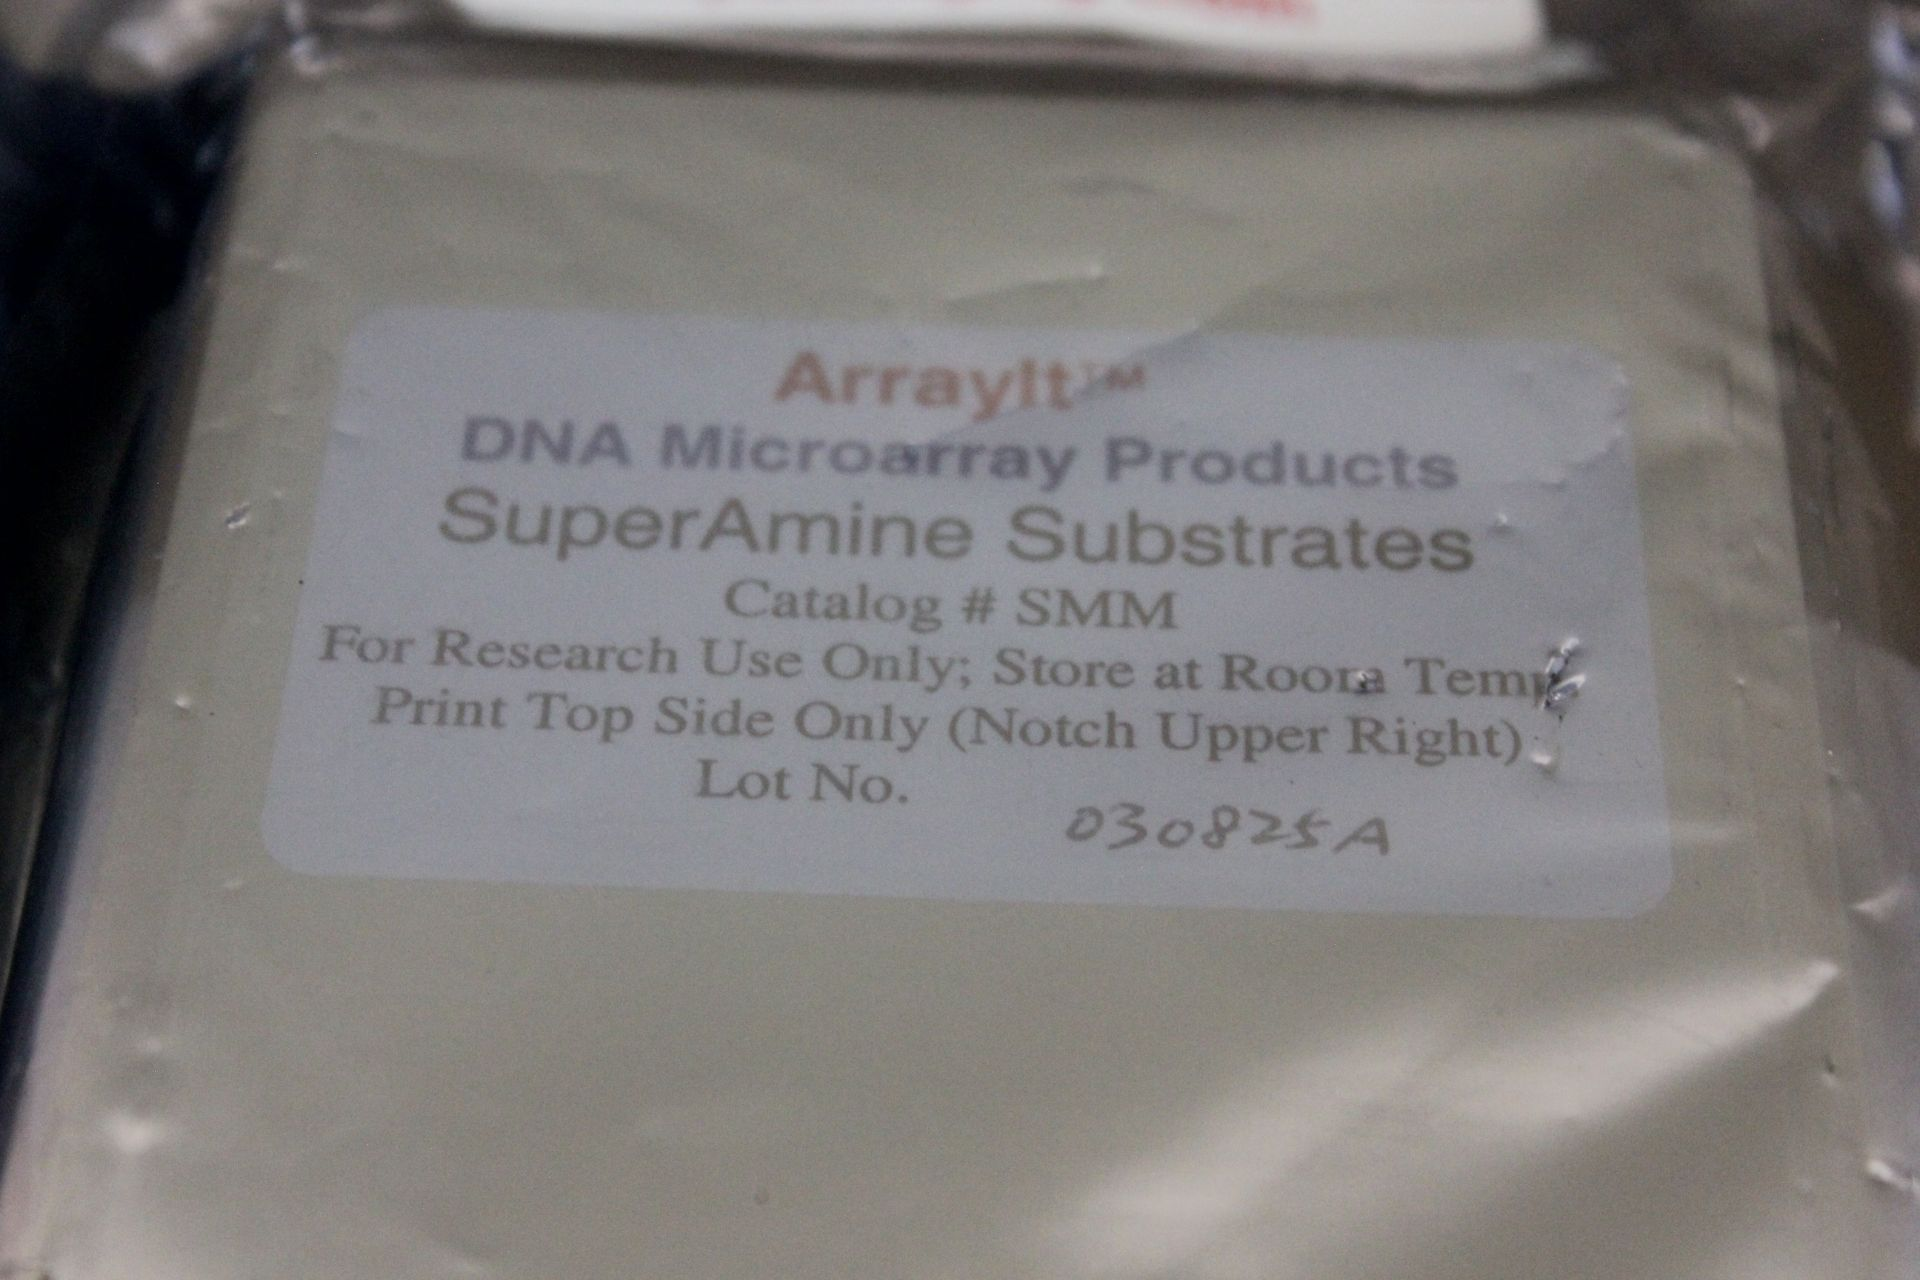 LOT OF 2 NEW ARRAYIT DNA MICROARRAY CASSETTES - Image 3 of 3